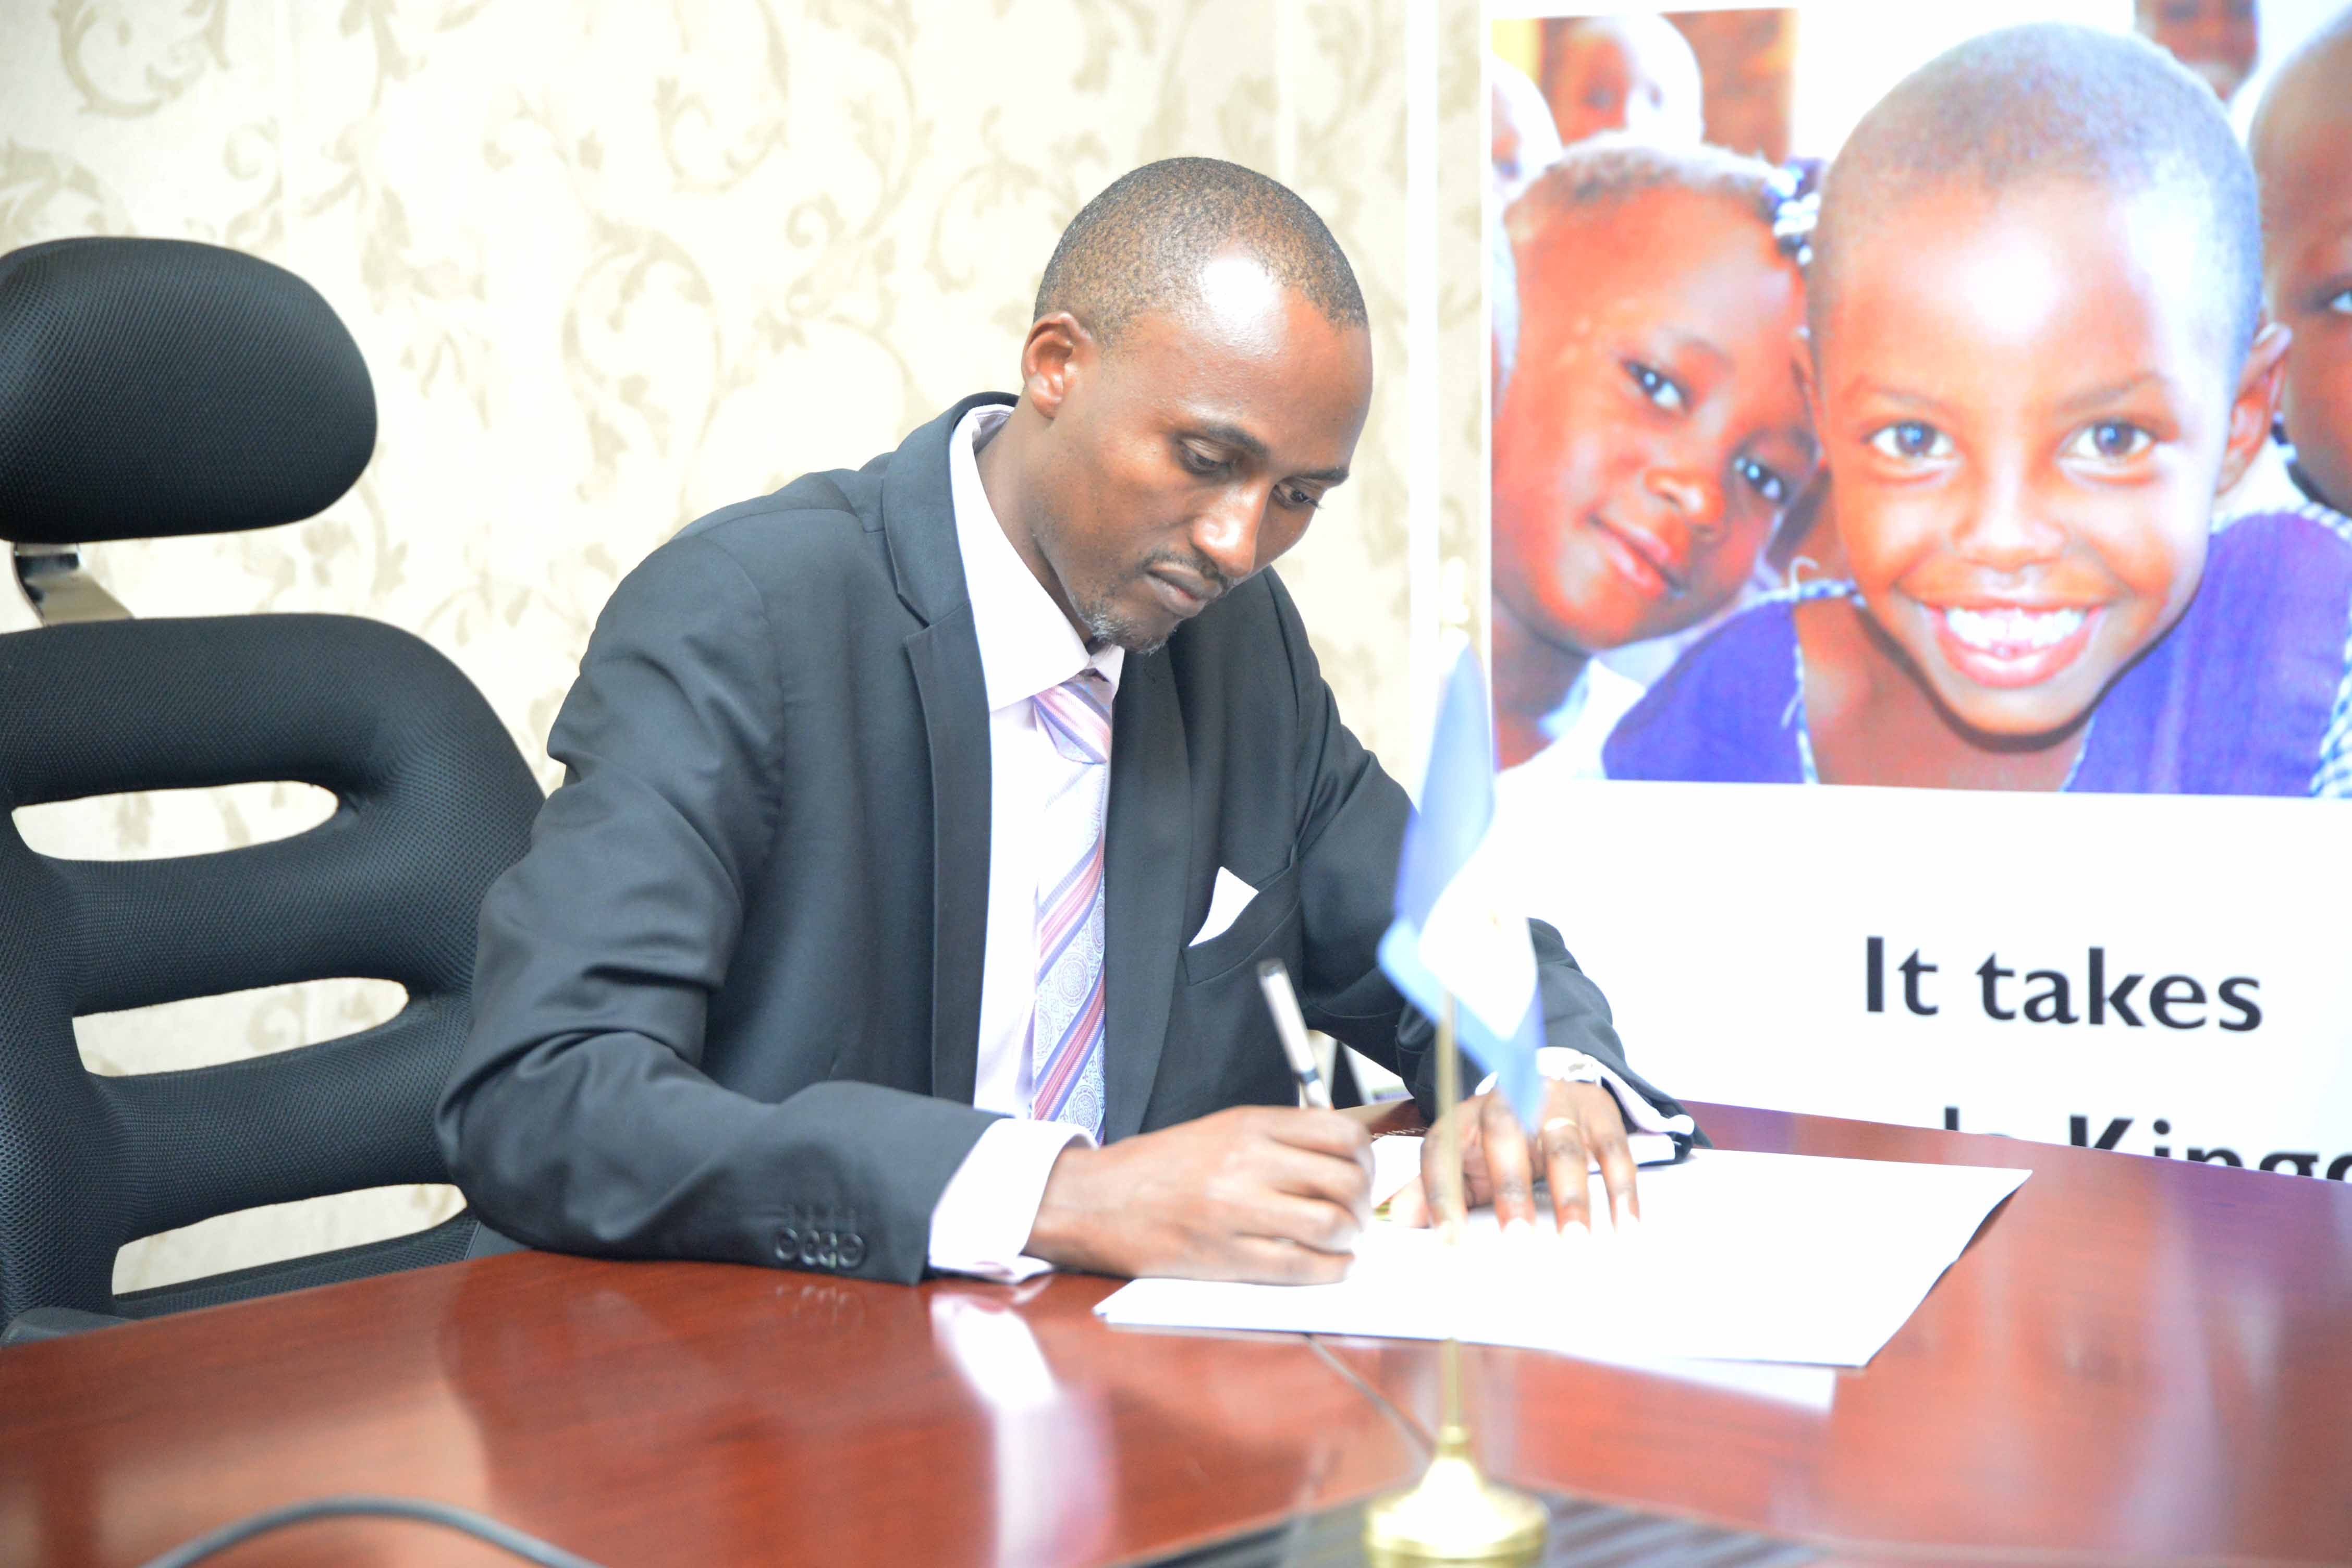 Jeremiah Nyagah, operations director for World Vision in Uganda signs the MOU between World Vision and the Buganda kingdom